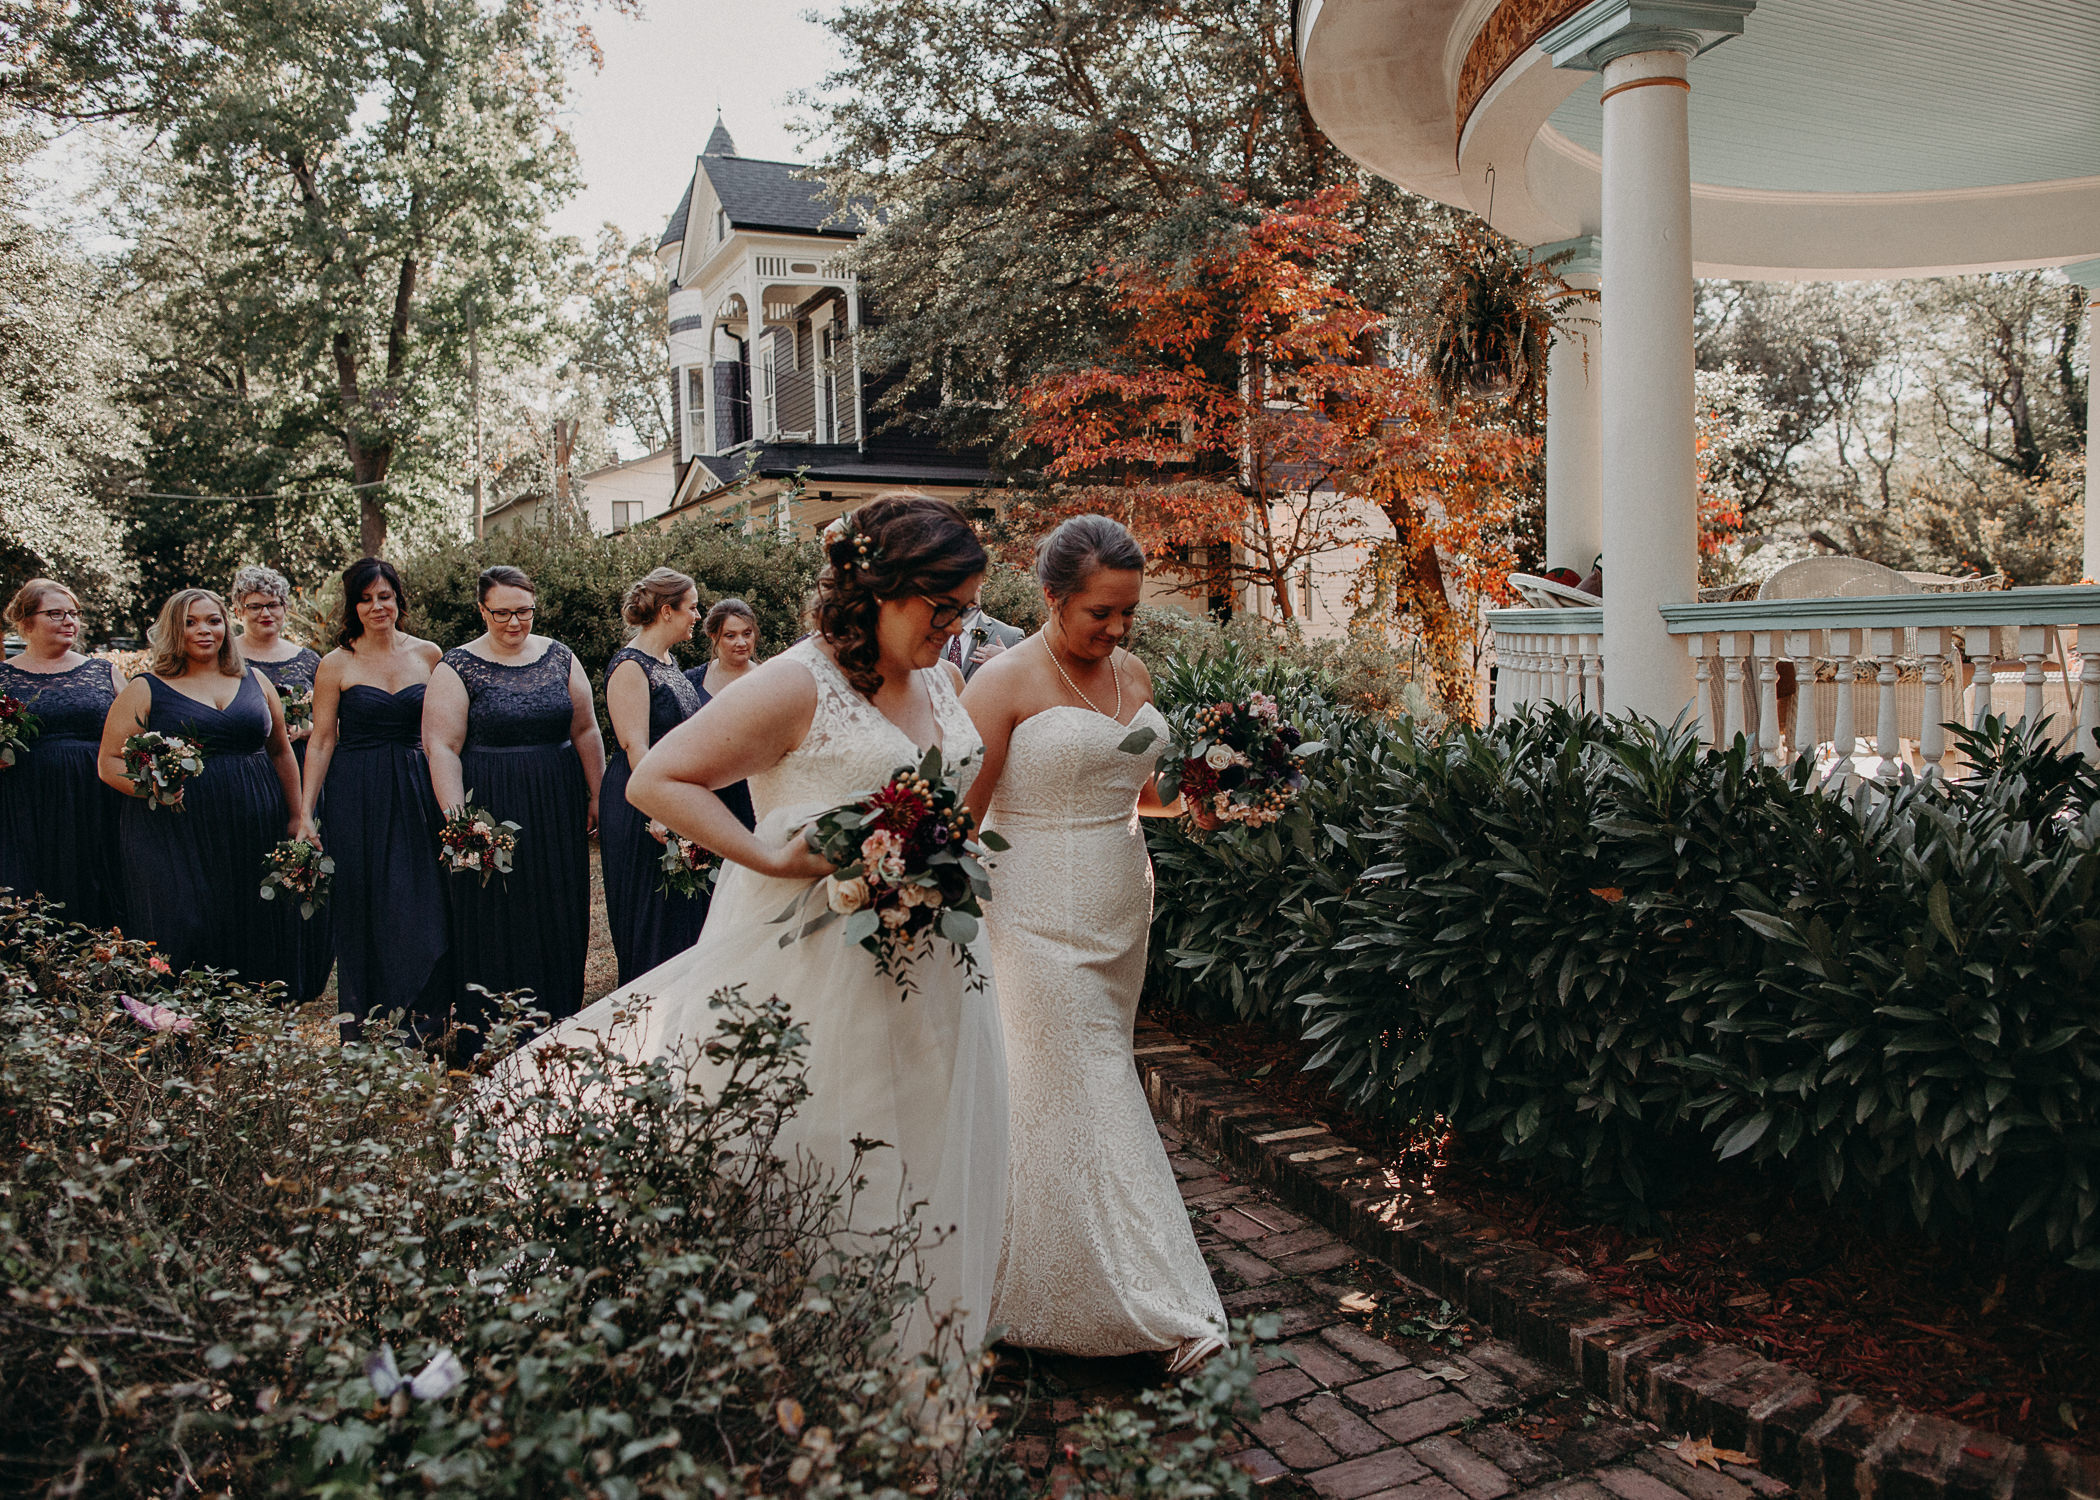 58 - Atlanta wedding photographer - Same sex wedding - wedding dress - details - ceremony - reception - bridal party - two brides. Aline Marin Photography .jpg.JPG